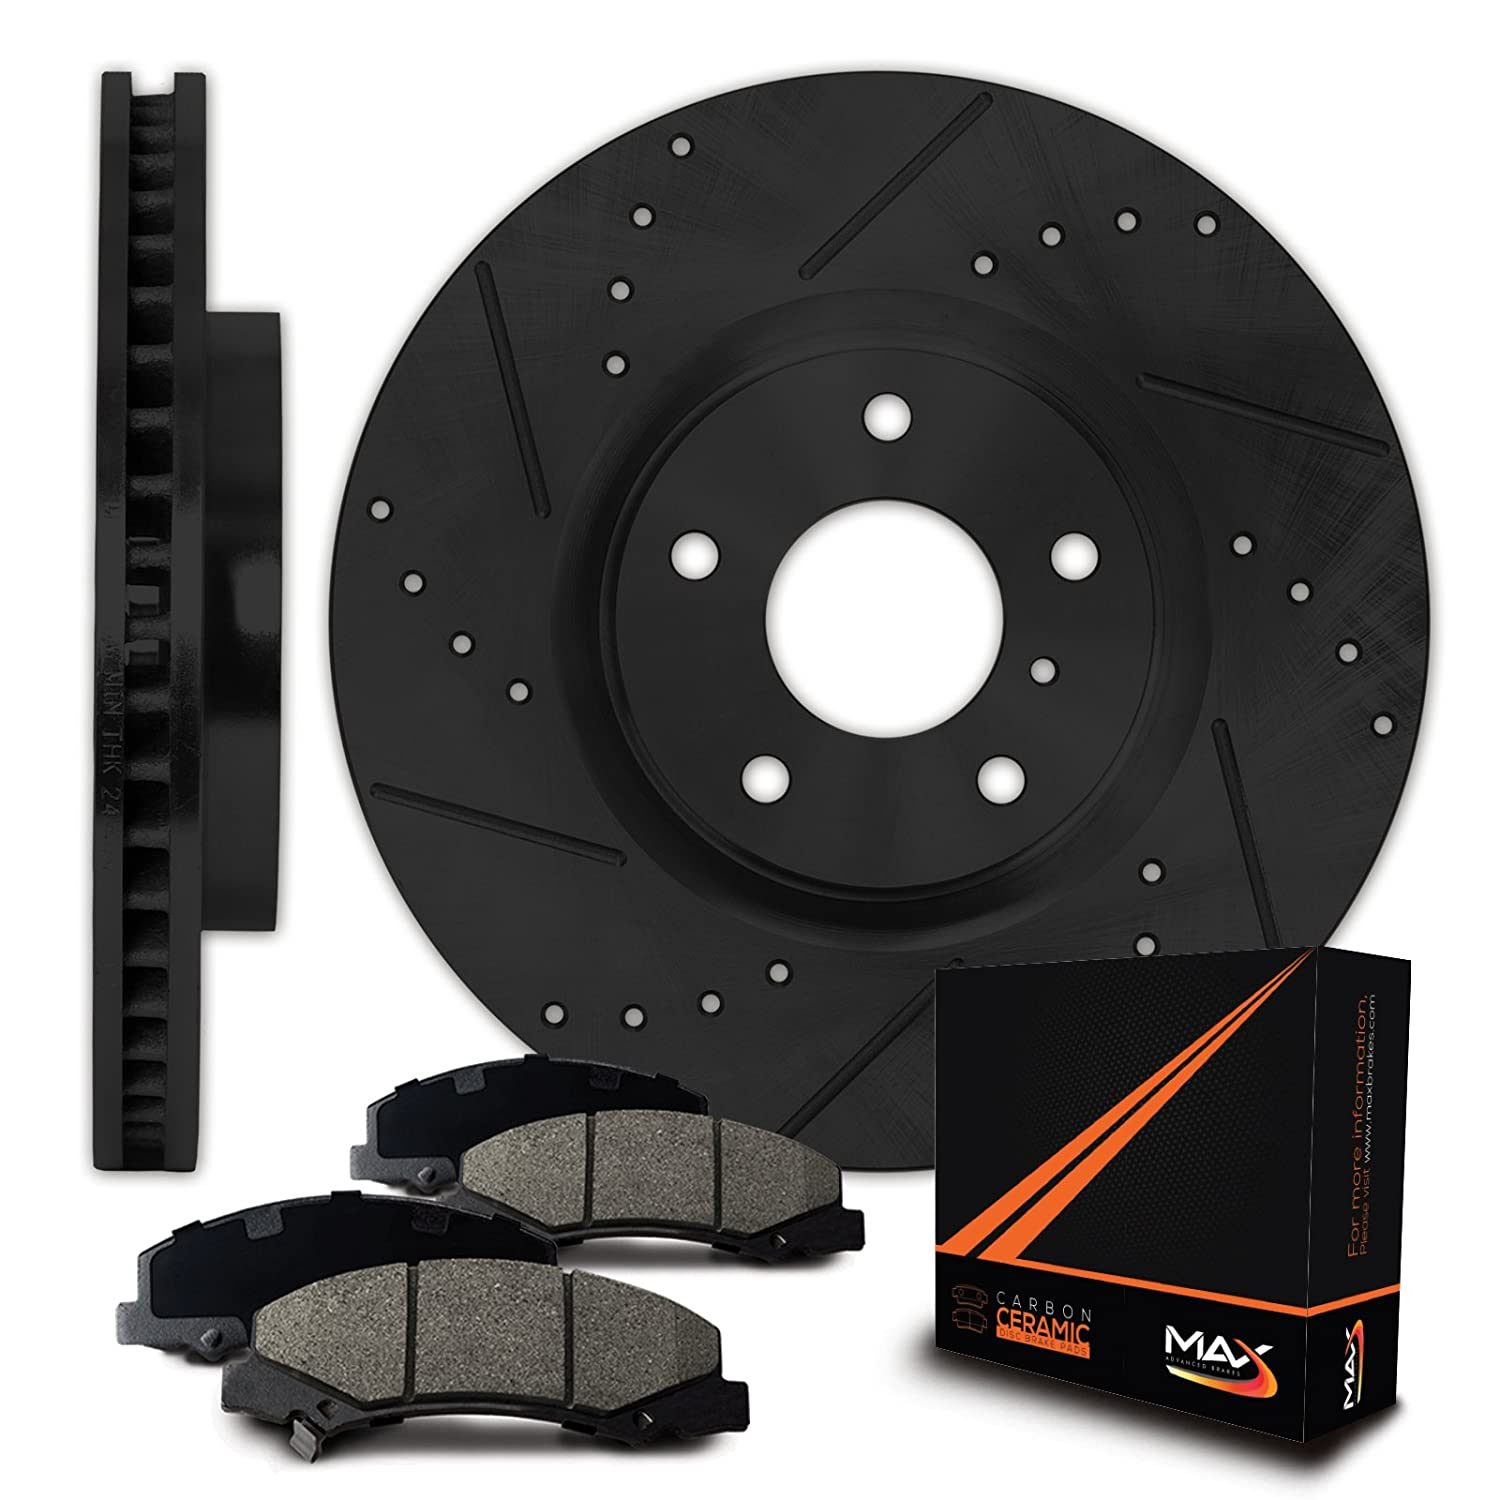 Max Brakes Front E-Coated Slot Drill Rotor w/Ceramic Pad Elite Brake Kit KT031681 | Fits: 2008 2009 Dodge Ram 1500 2WD/4WD Model w/5 Lugs Rotor; Non SRT-10 Model and MEGA CAB Model with 8 Lug Rotor Max Advanced Brakes